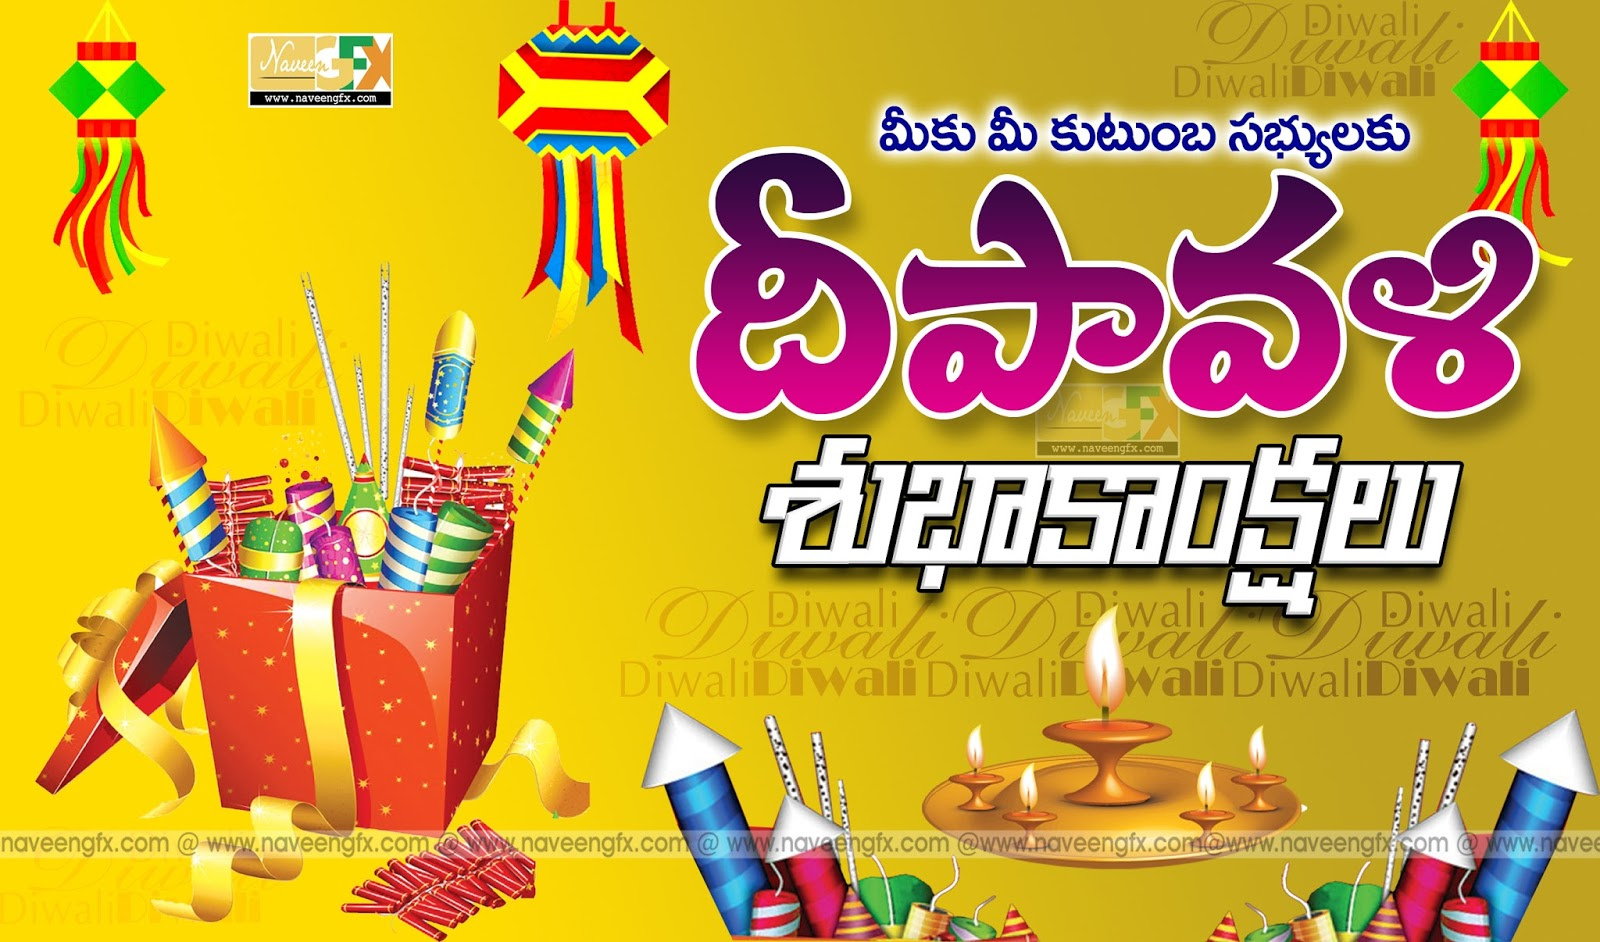 Happy diwali telugu wishes quotes and greetings online naveengfx happy diwali telugu wishes quotes and greetings hd kristyandbryce Gallery